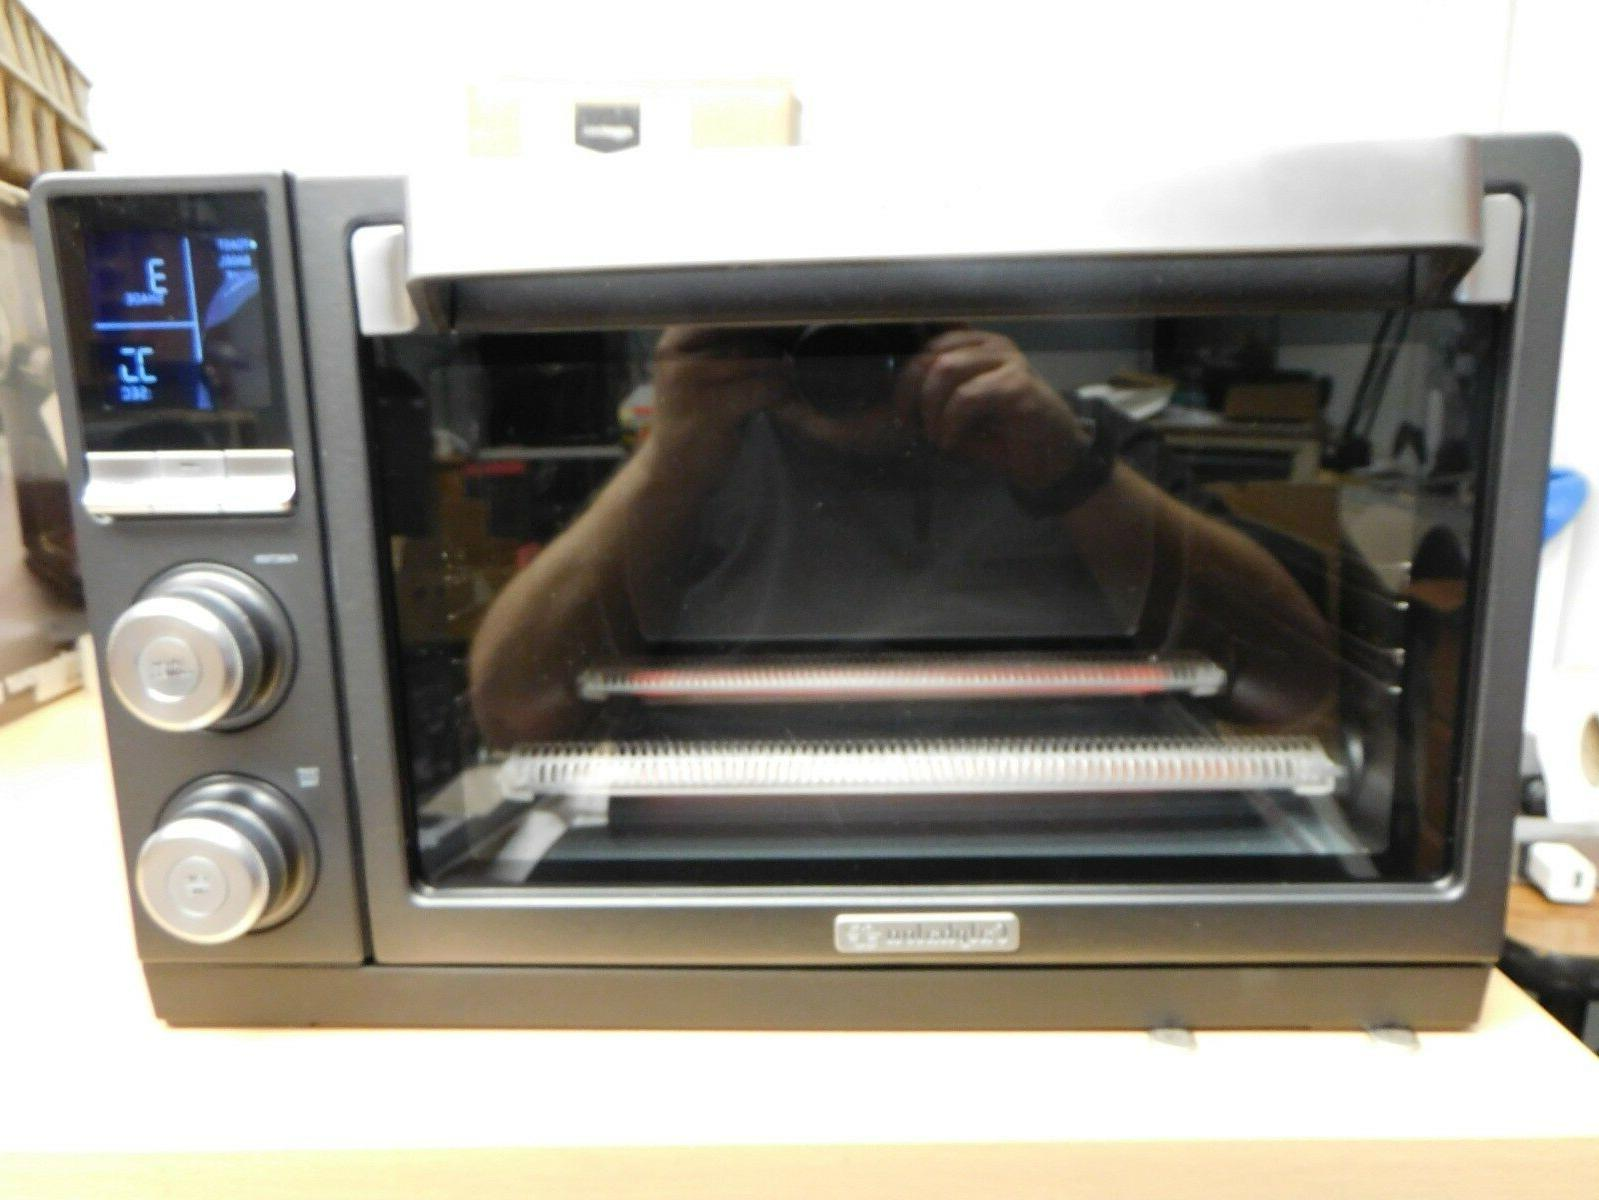 Calphalon Heat Convection Toaster Oven Brand New Lcd